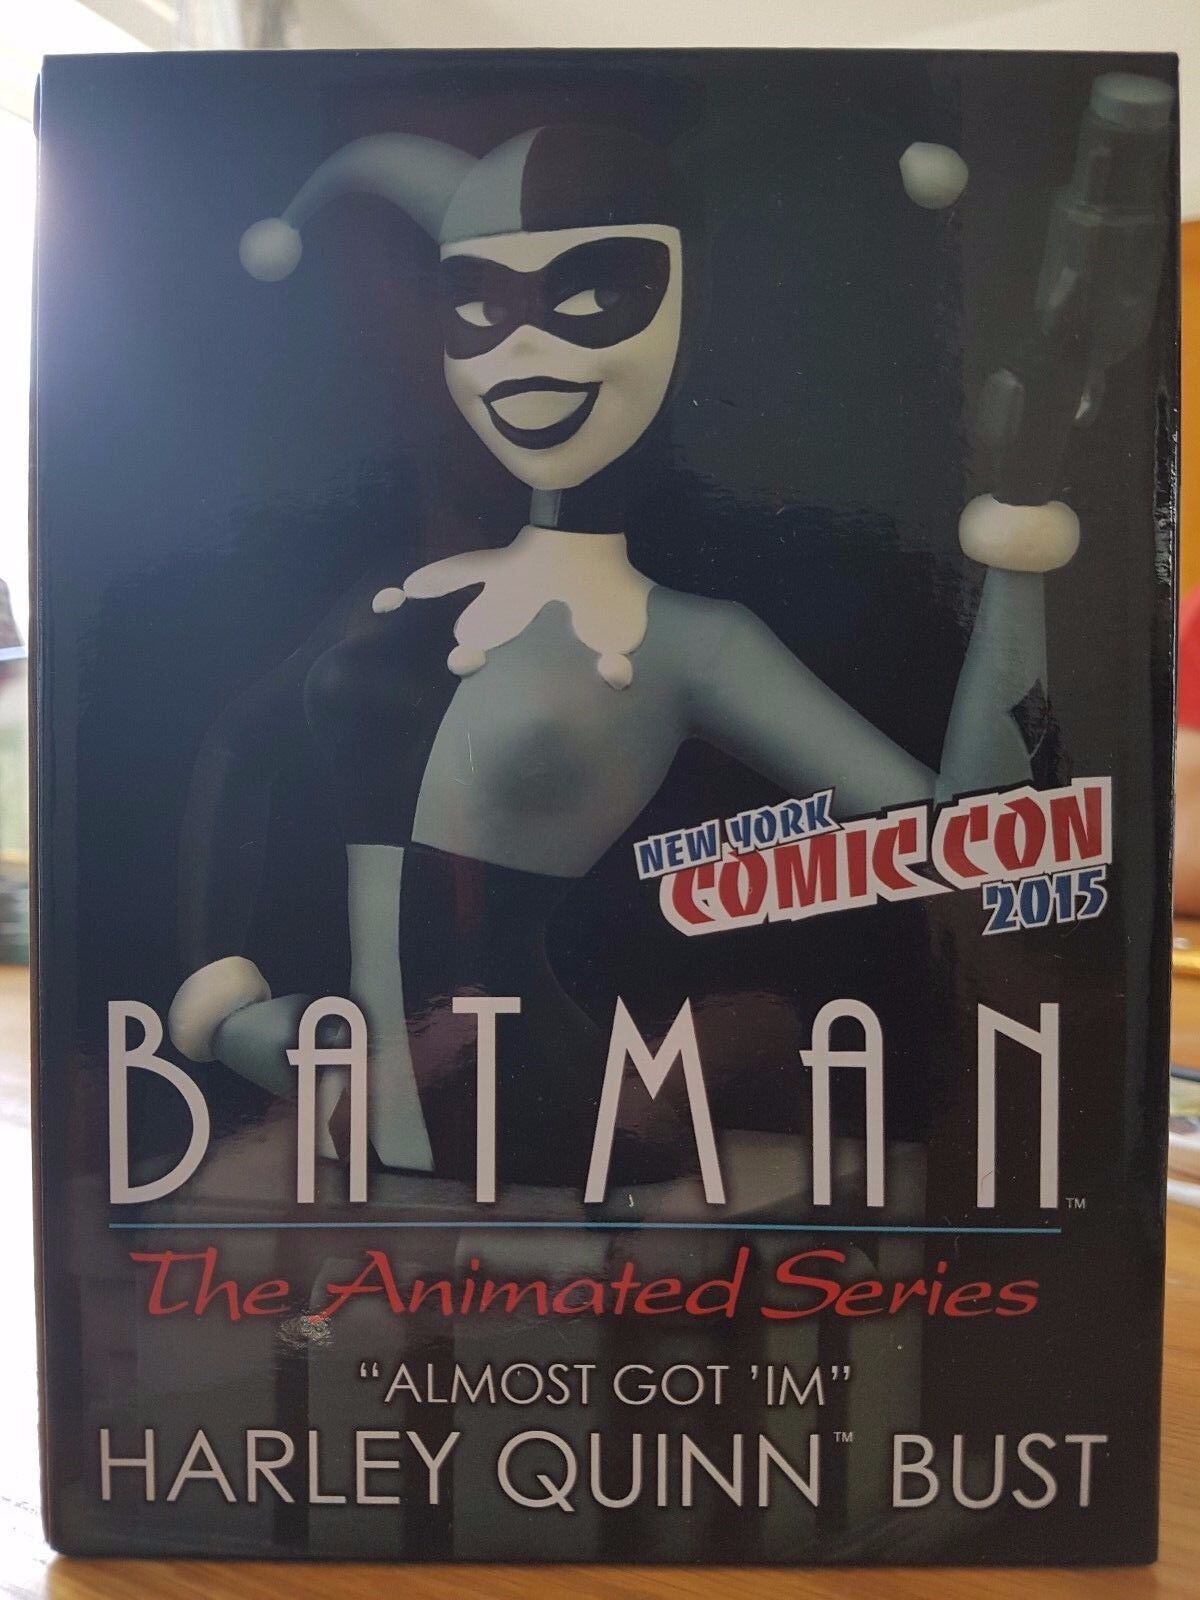 Batman The Animated Series Harley Quinn Bust schwarz & Weiß NYCC 2015 UK Seller